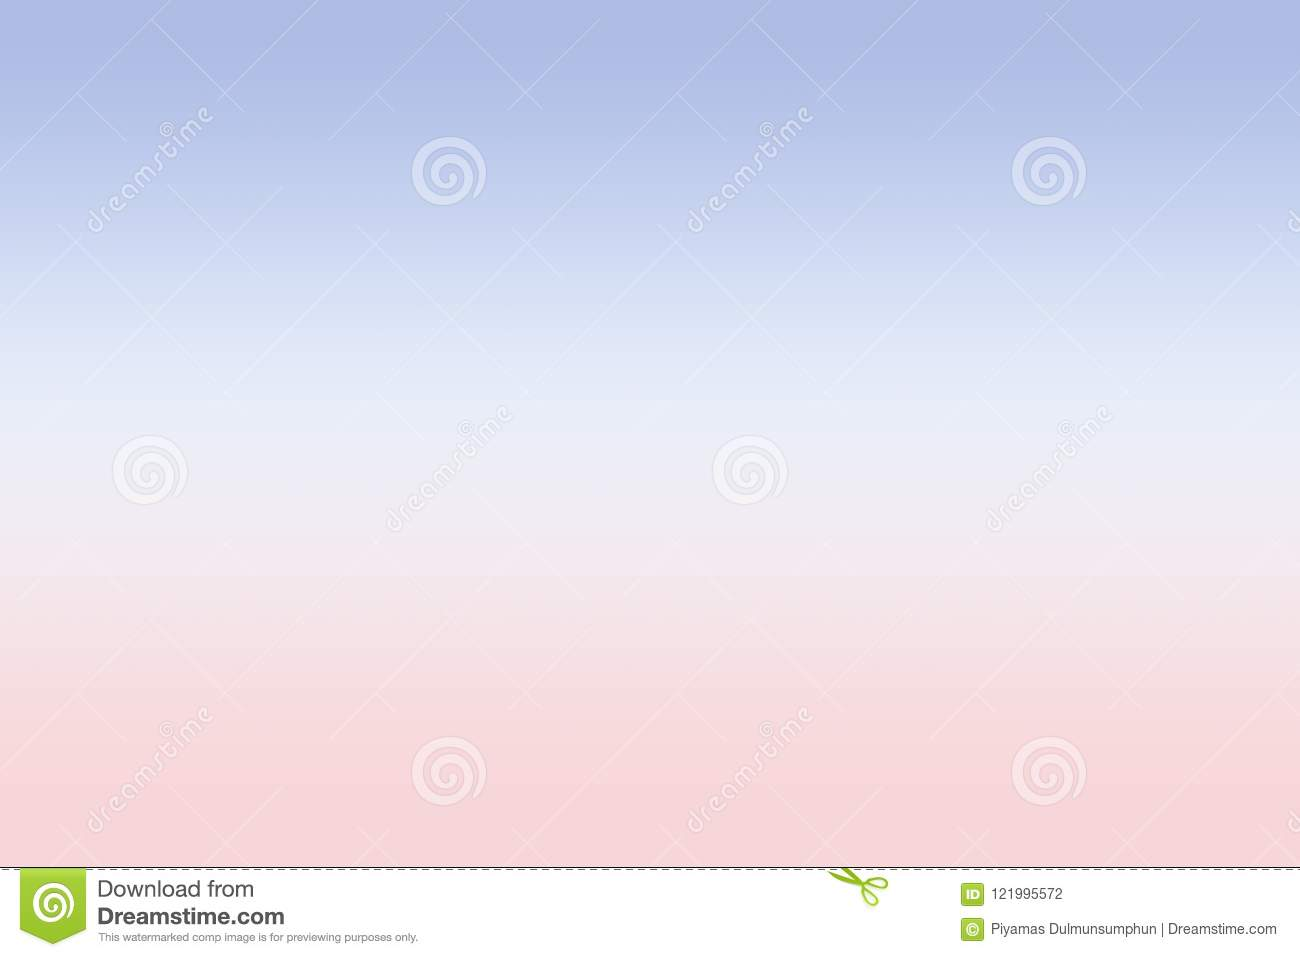 Abstract Blurred Background With Pantone Gradient Color